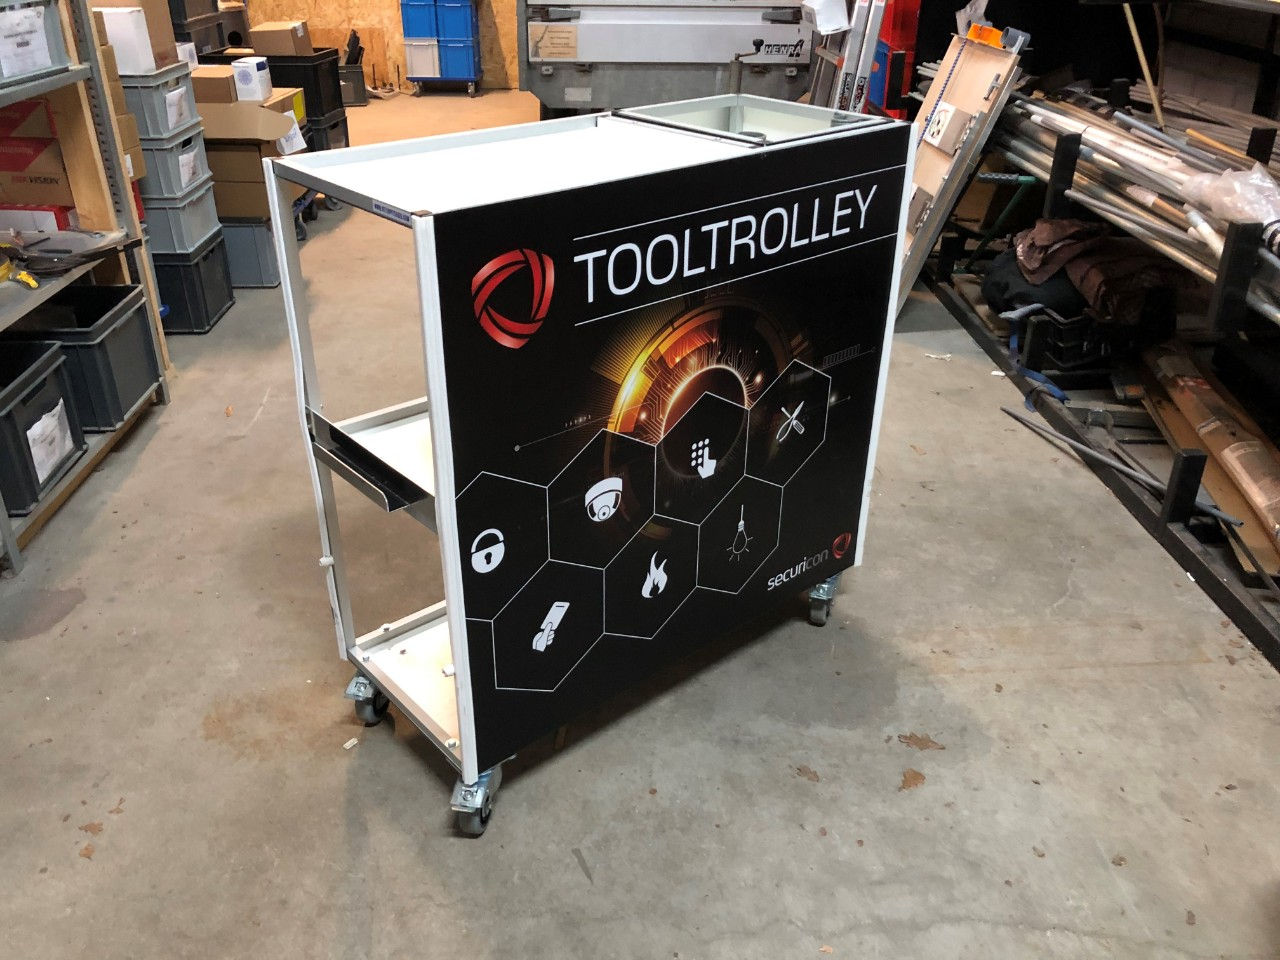 Tooltrolly # (1)